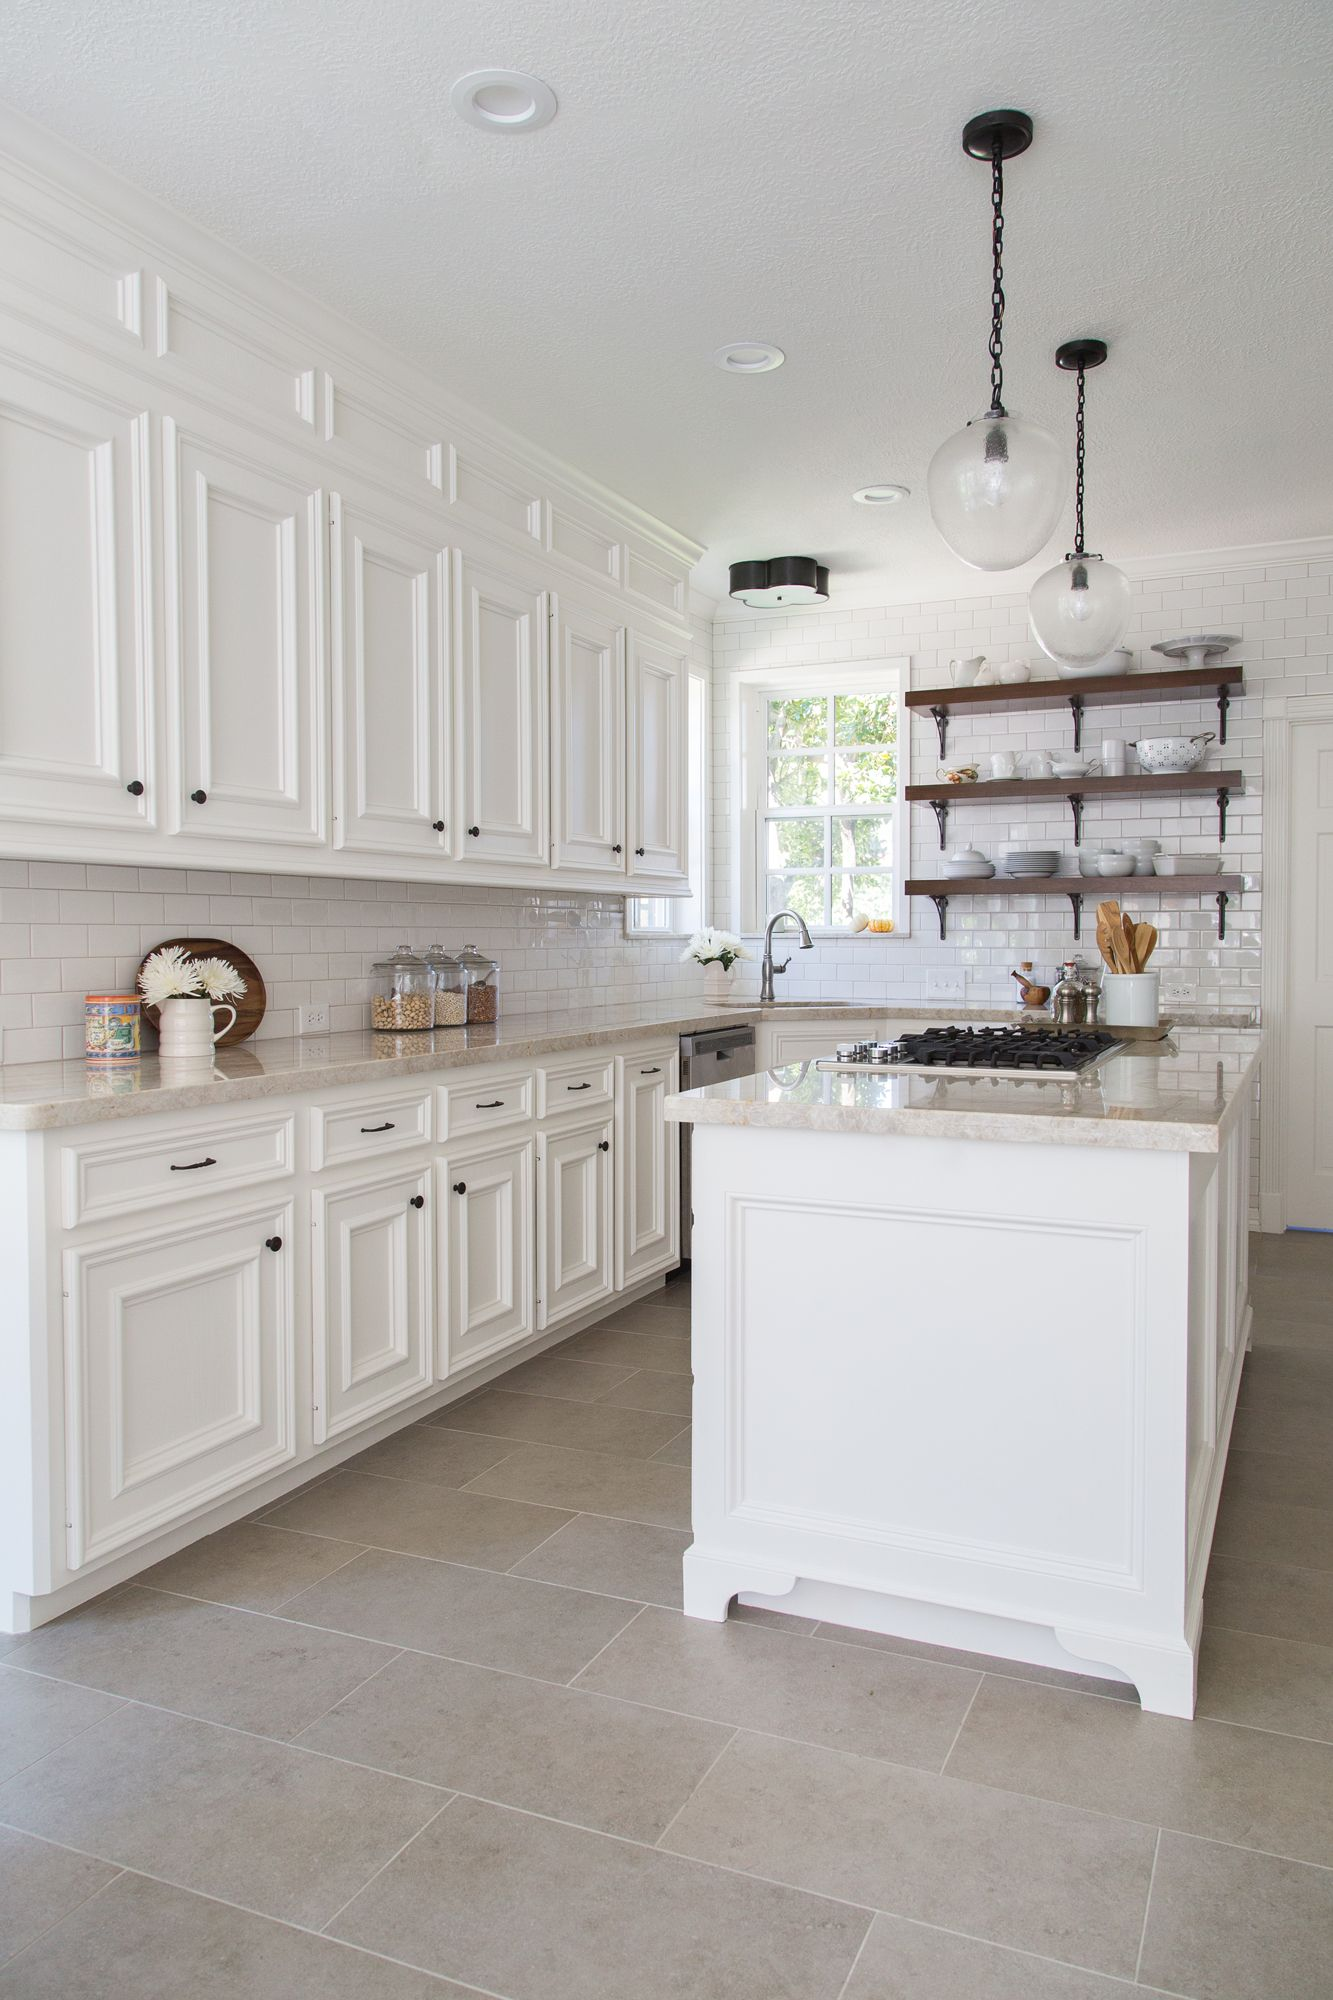 kitchen floor tiles. Farmhouse Kitchen Remodel | Interior Designer: Carla Aston Photographer: Tori Floor Tiles M